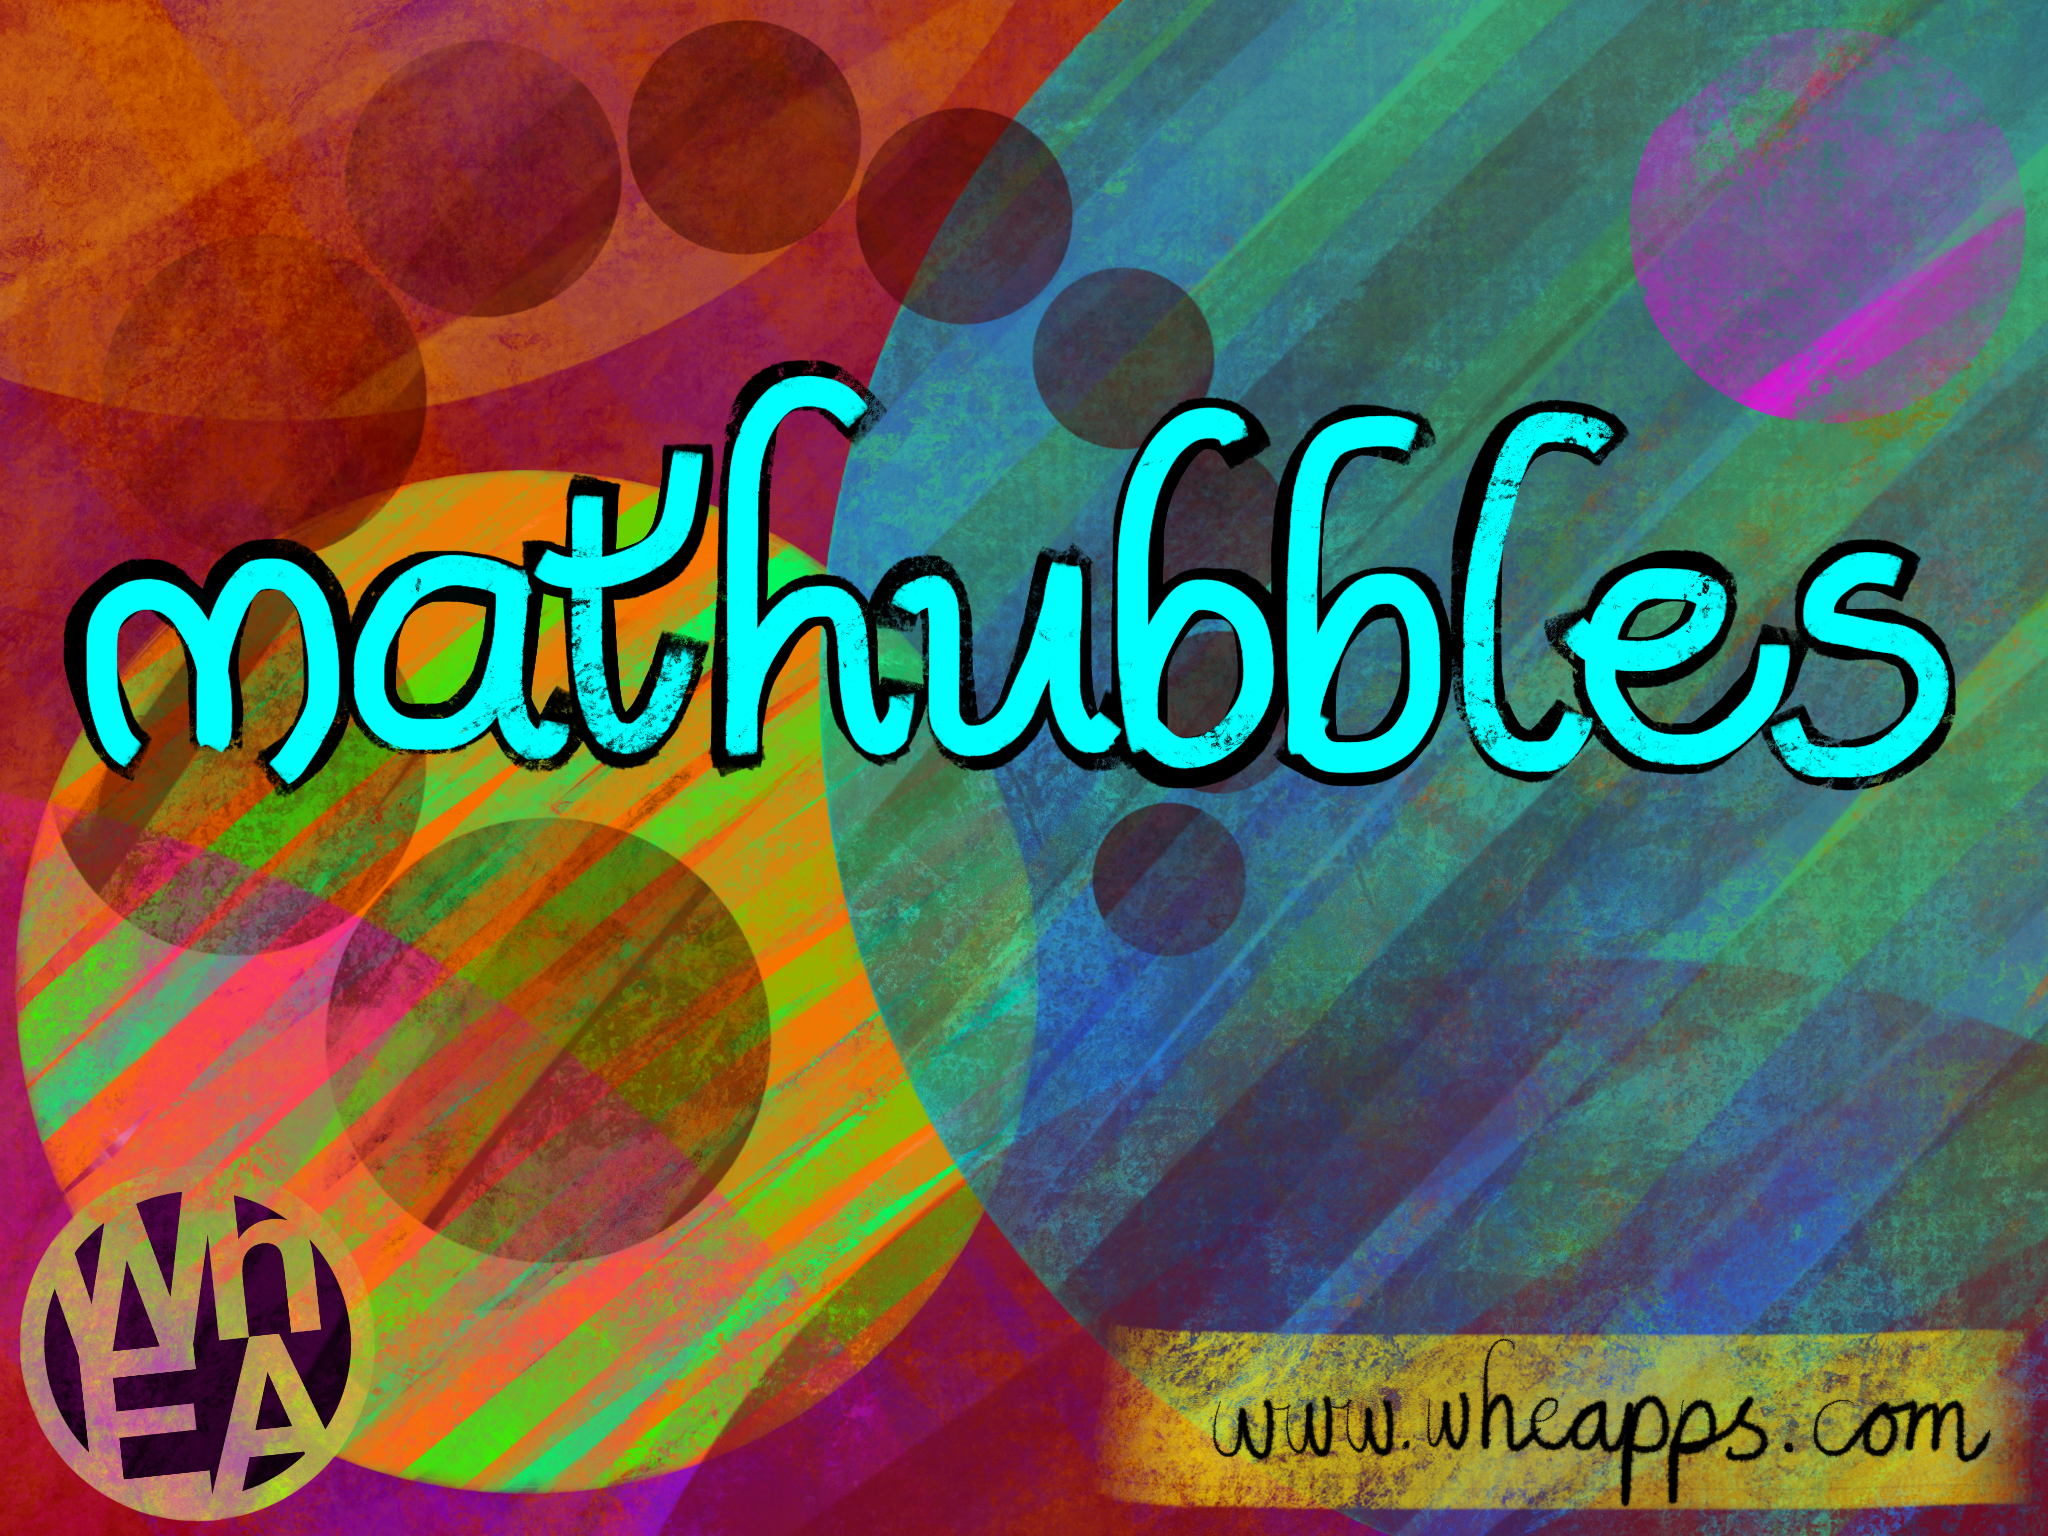 Mathubbles